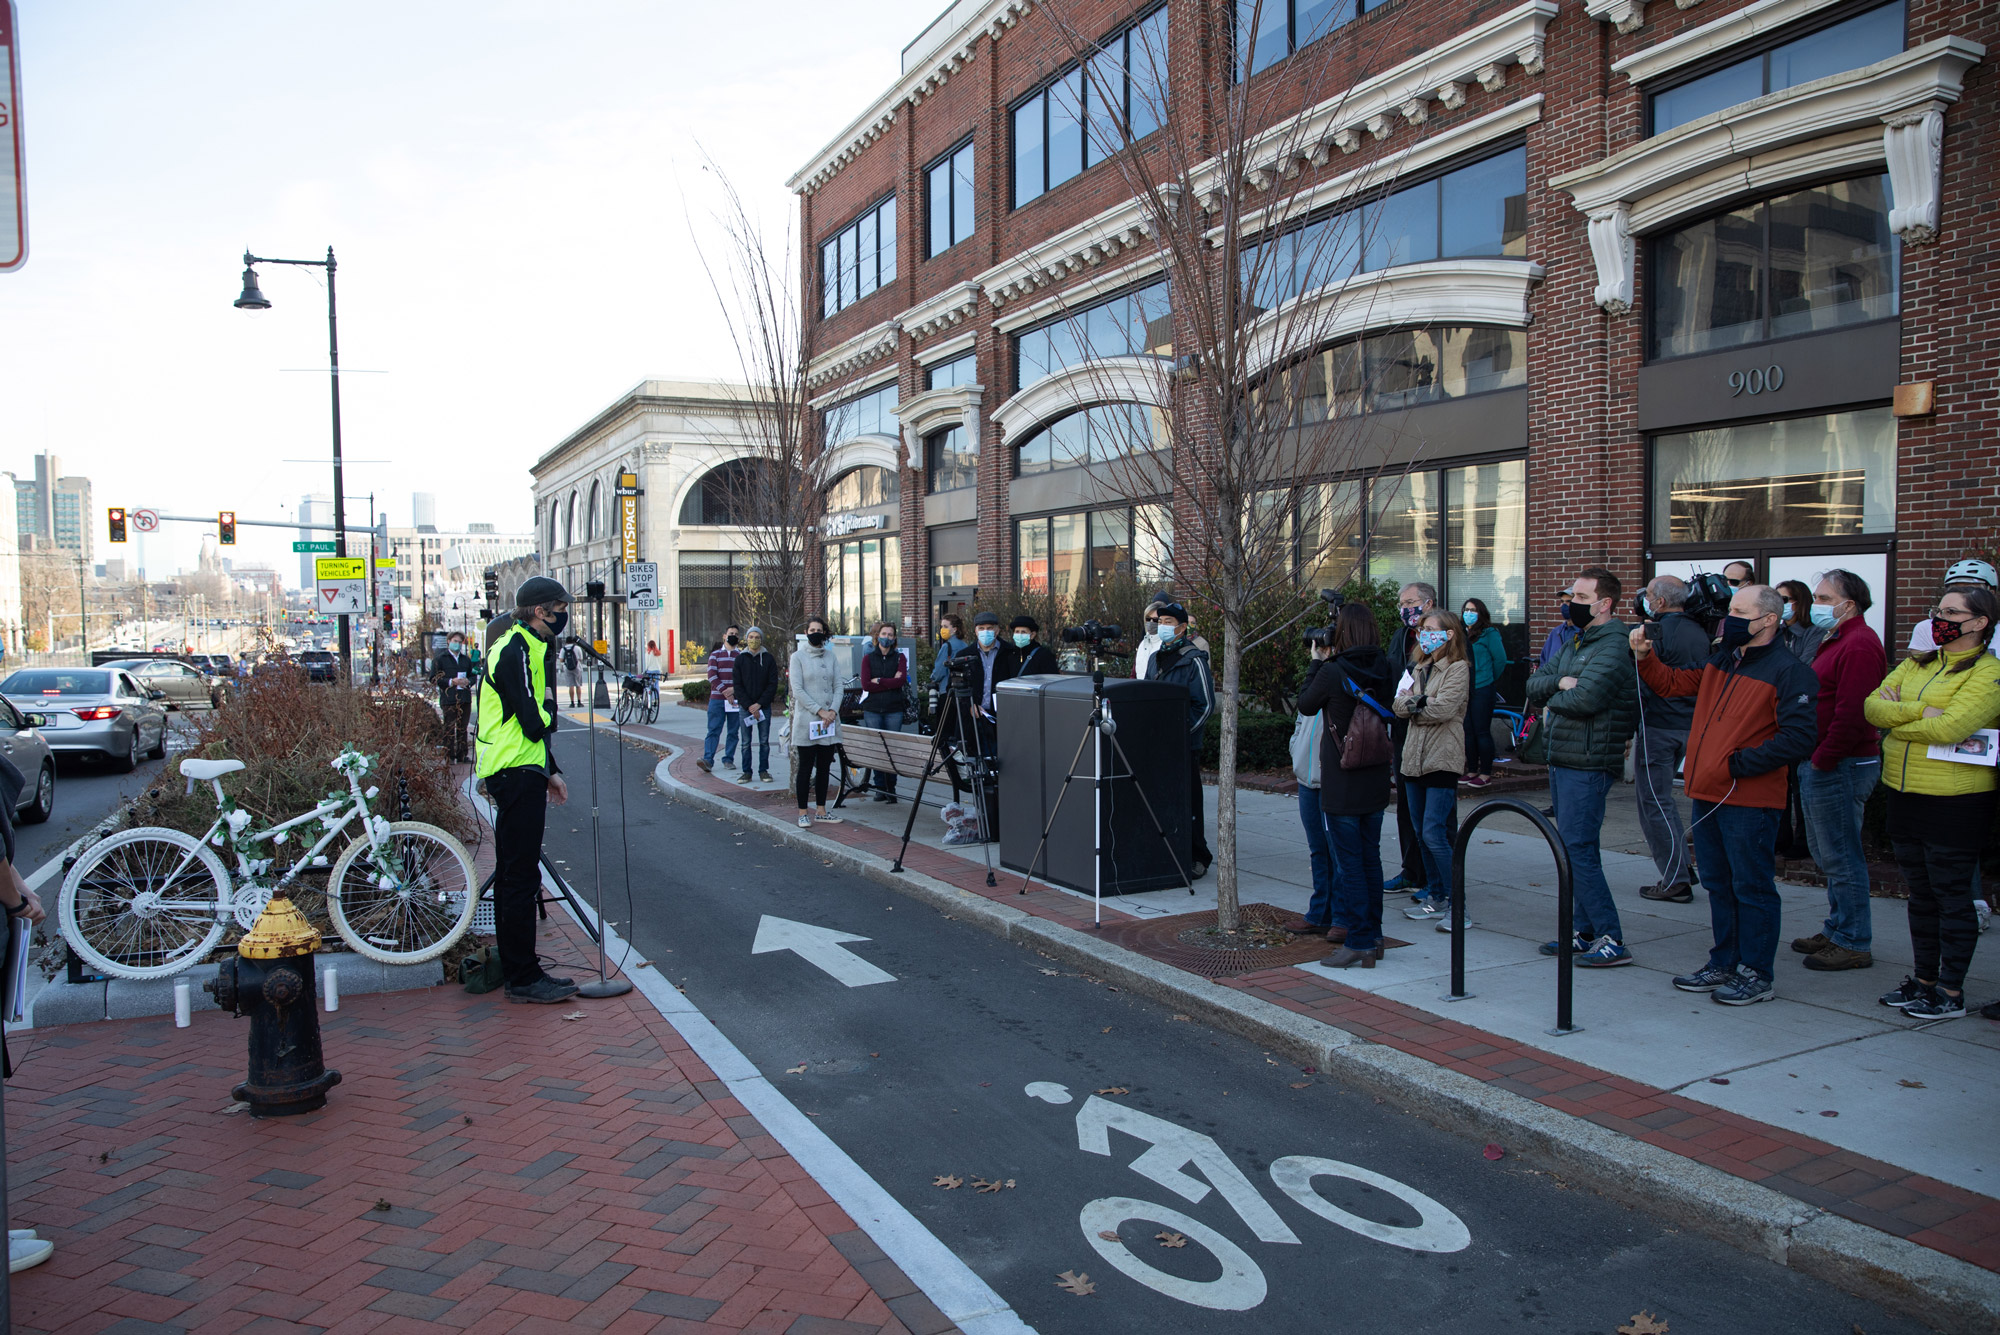 A gathering of family, friends, city officials, bicycle advocates, and others from the BU community filled the sidewalk on Saturday, November 21, 2020, to celebrate the life of Christopher Weigl with a memorial ghost bike installation ceremony on the corner of Commonwealth Avenue and St. Paul Street in Boston, where he was killed on his bike by a truck driver in December of 2012.